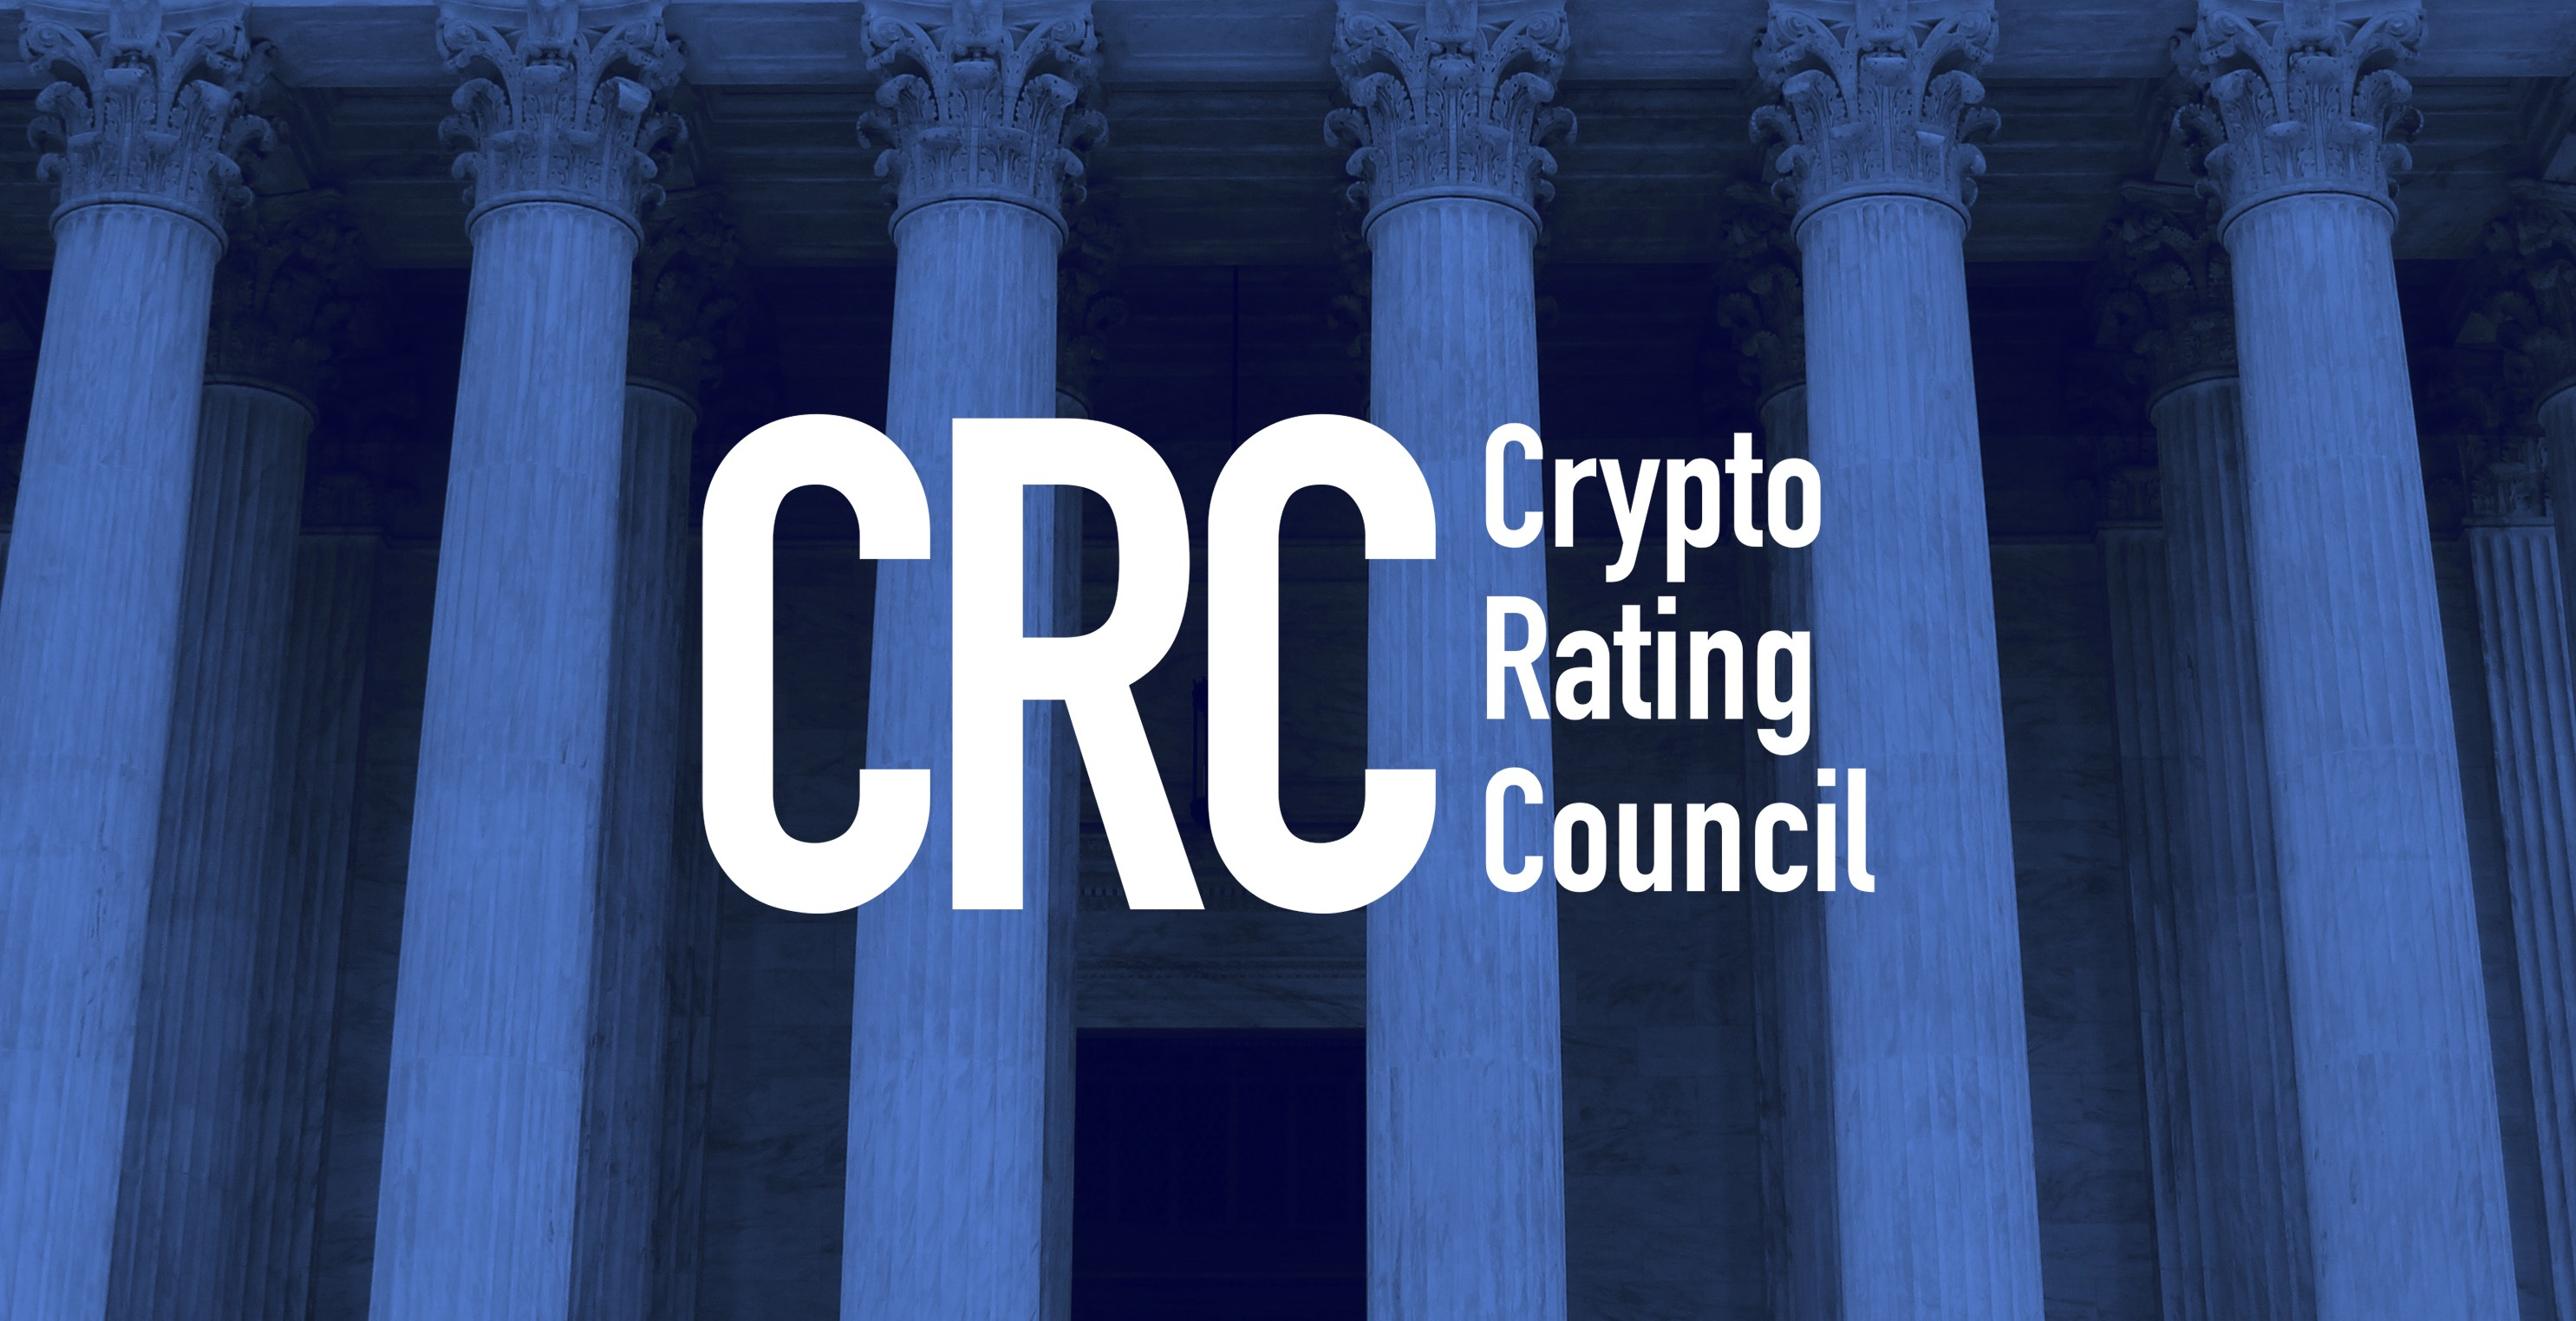 Introducing the Crypto Rating Council - The Coinbase Blog